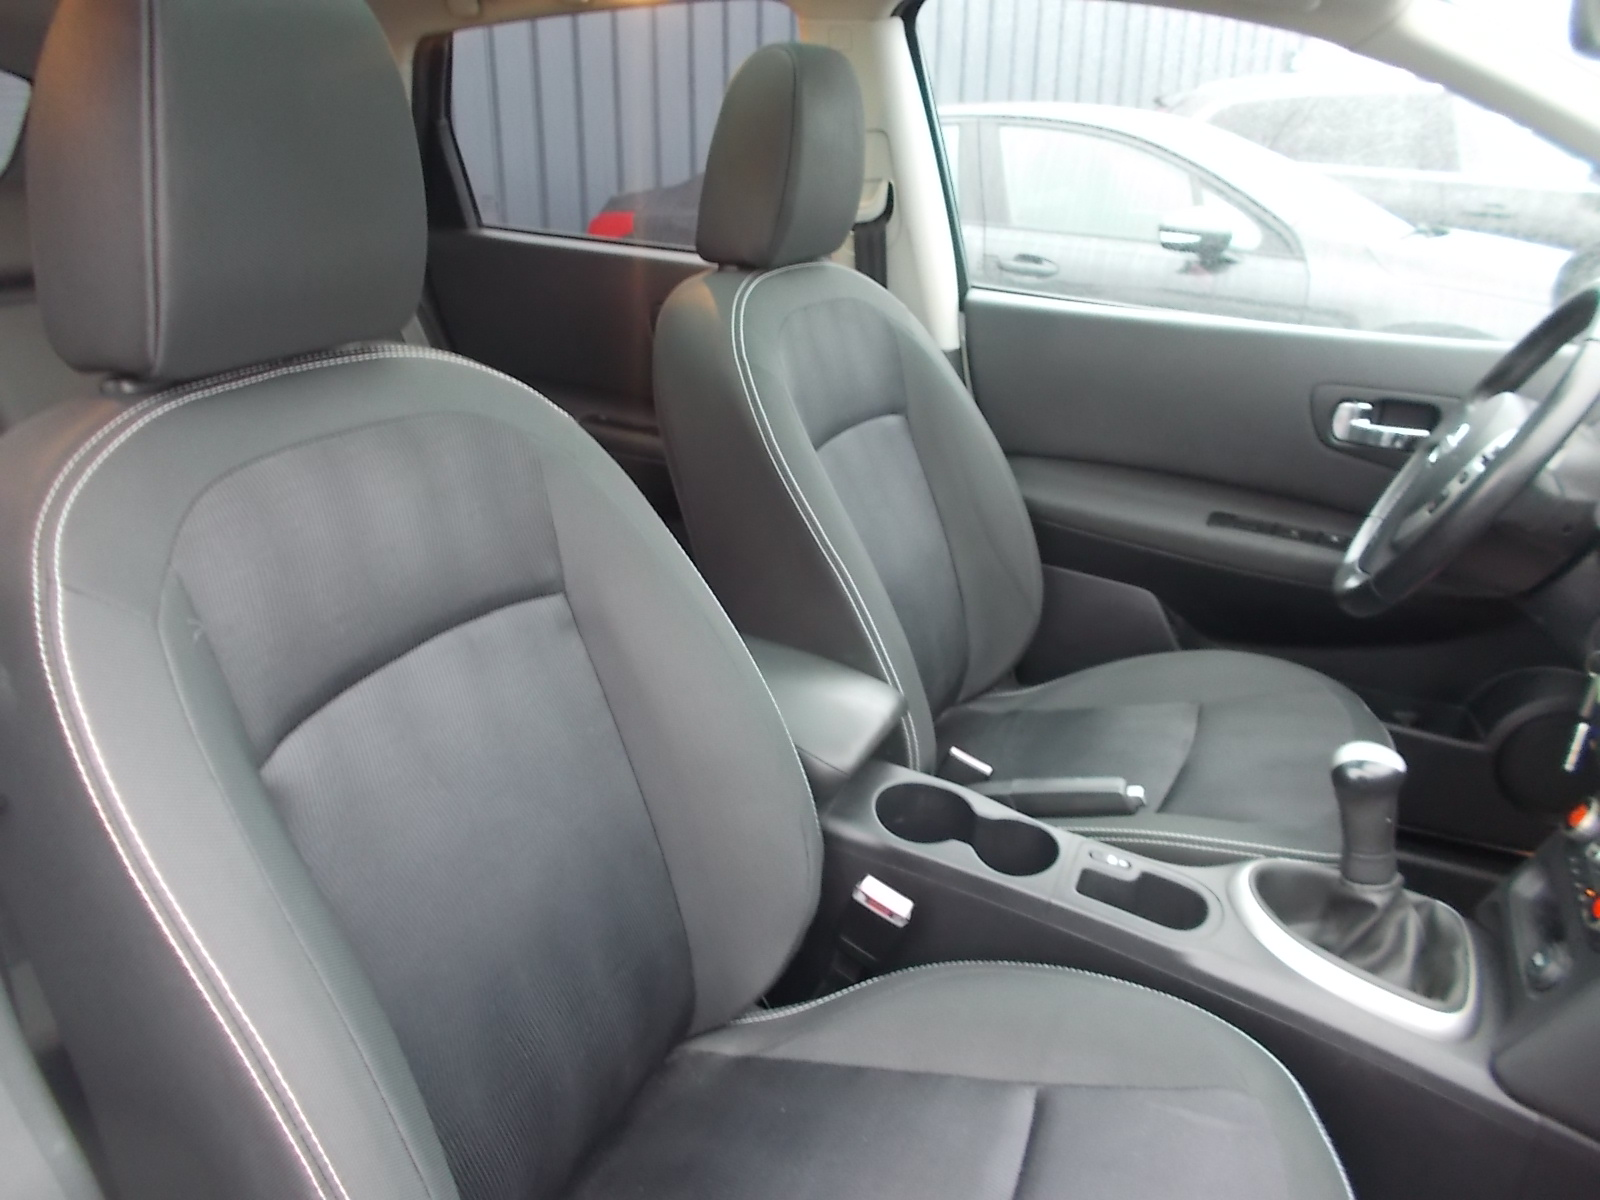 volkswagen tiguan 2 0 tdi 110 cv bluemotion technology edition bv6 nos occasions vente voitures. Black Bedroom Furniture Sets. Home Design Ideas